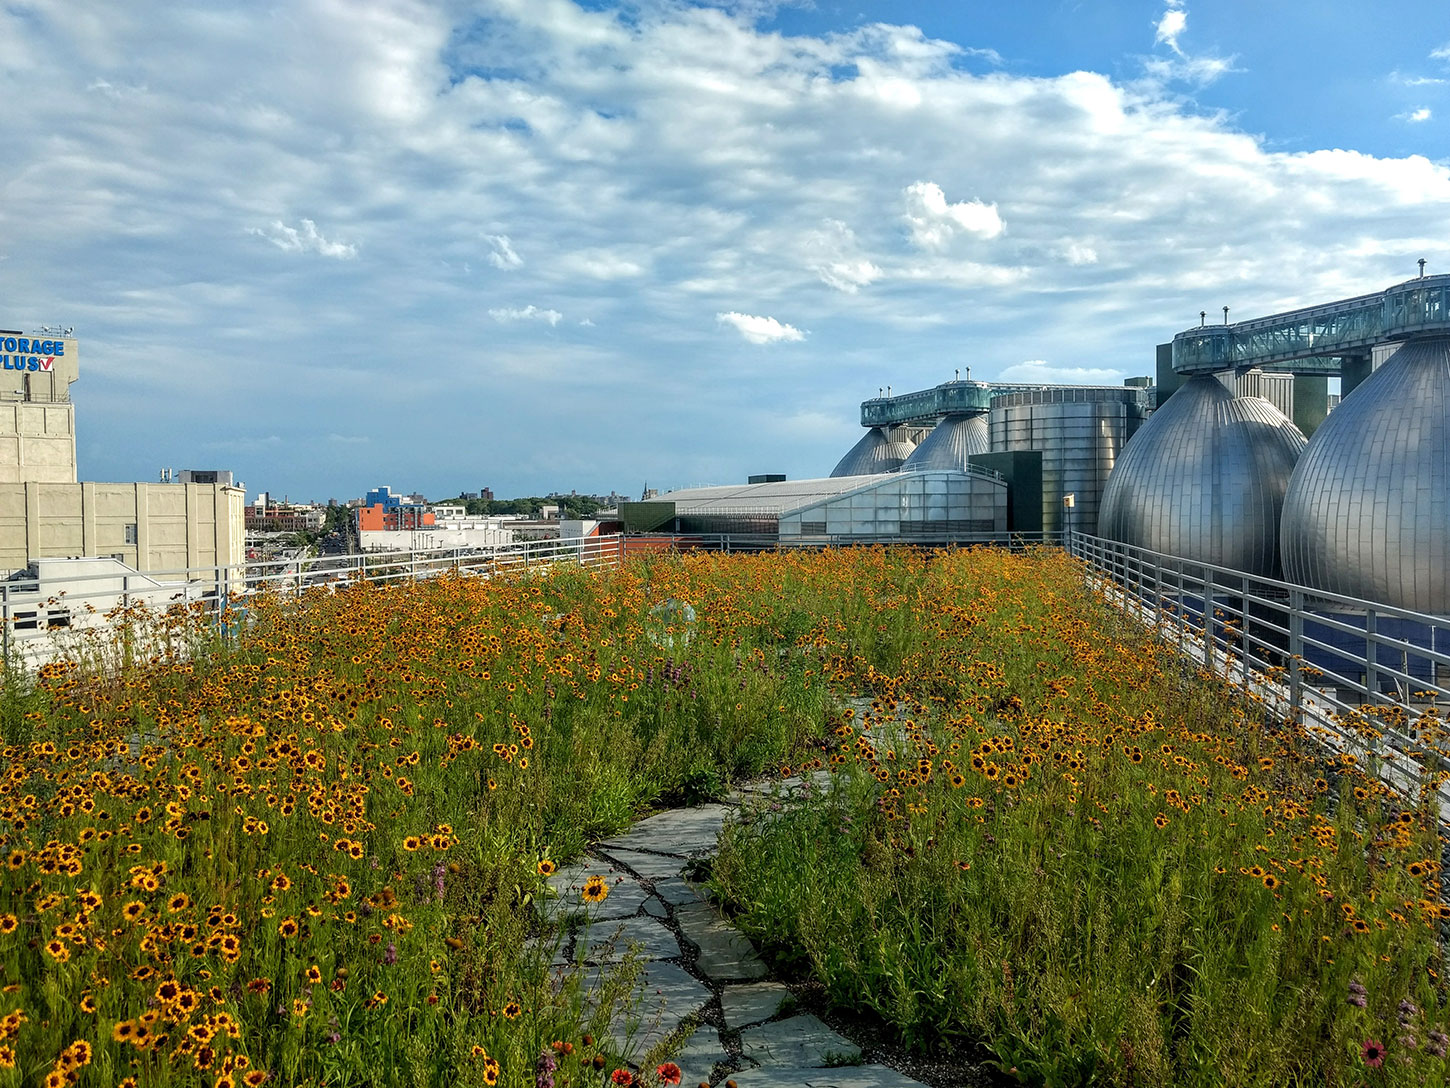 Kingsland Wildflowers Green Roof & Community Space Featured Image